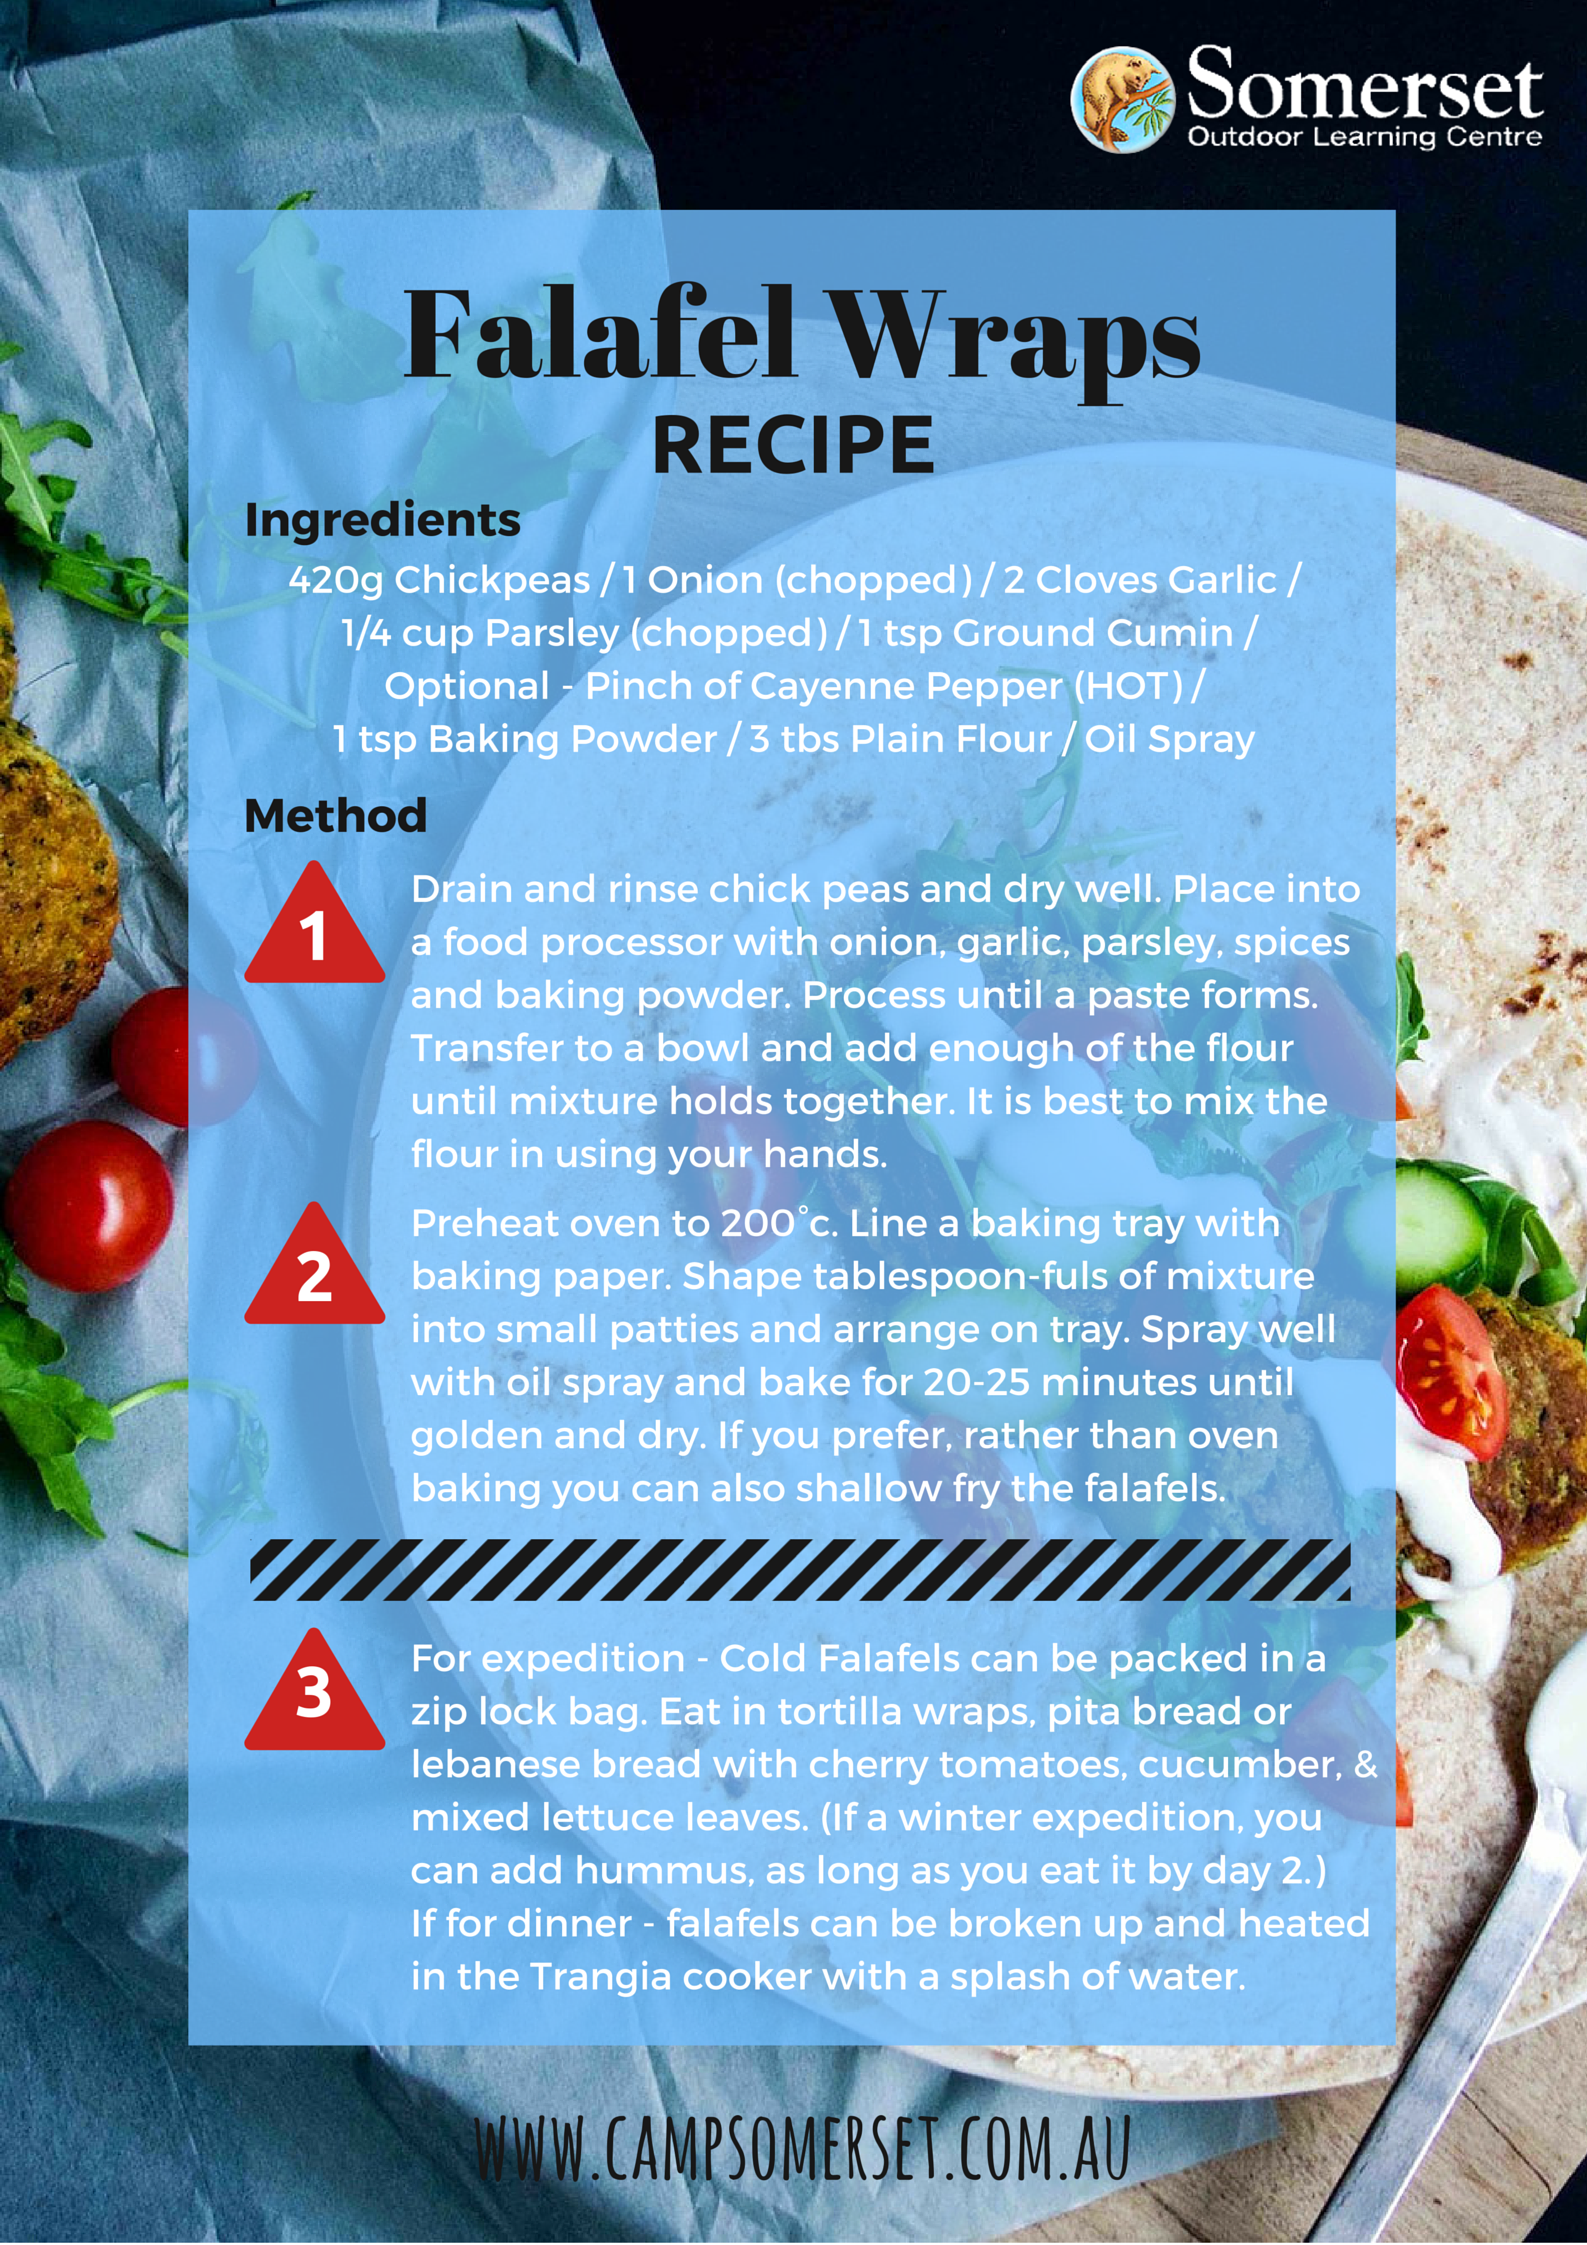 Image Falafel Wraps Recipe Card